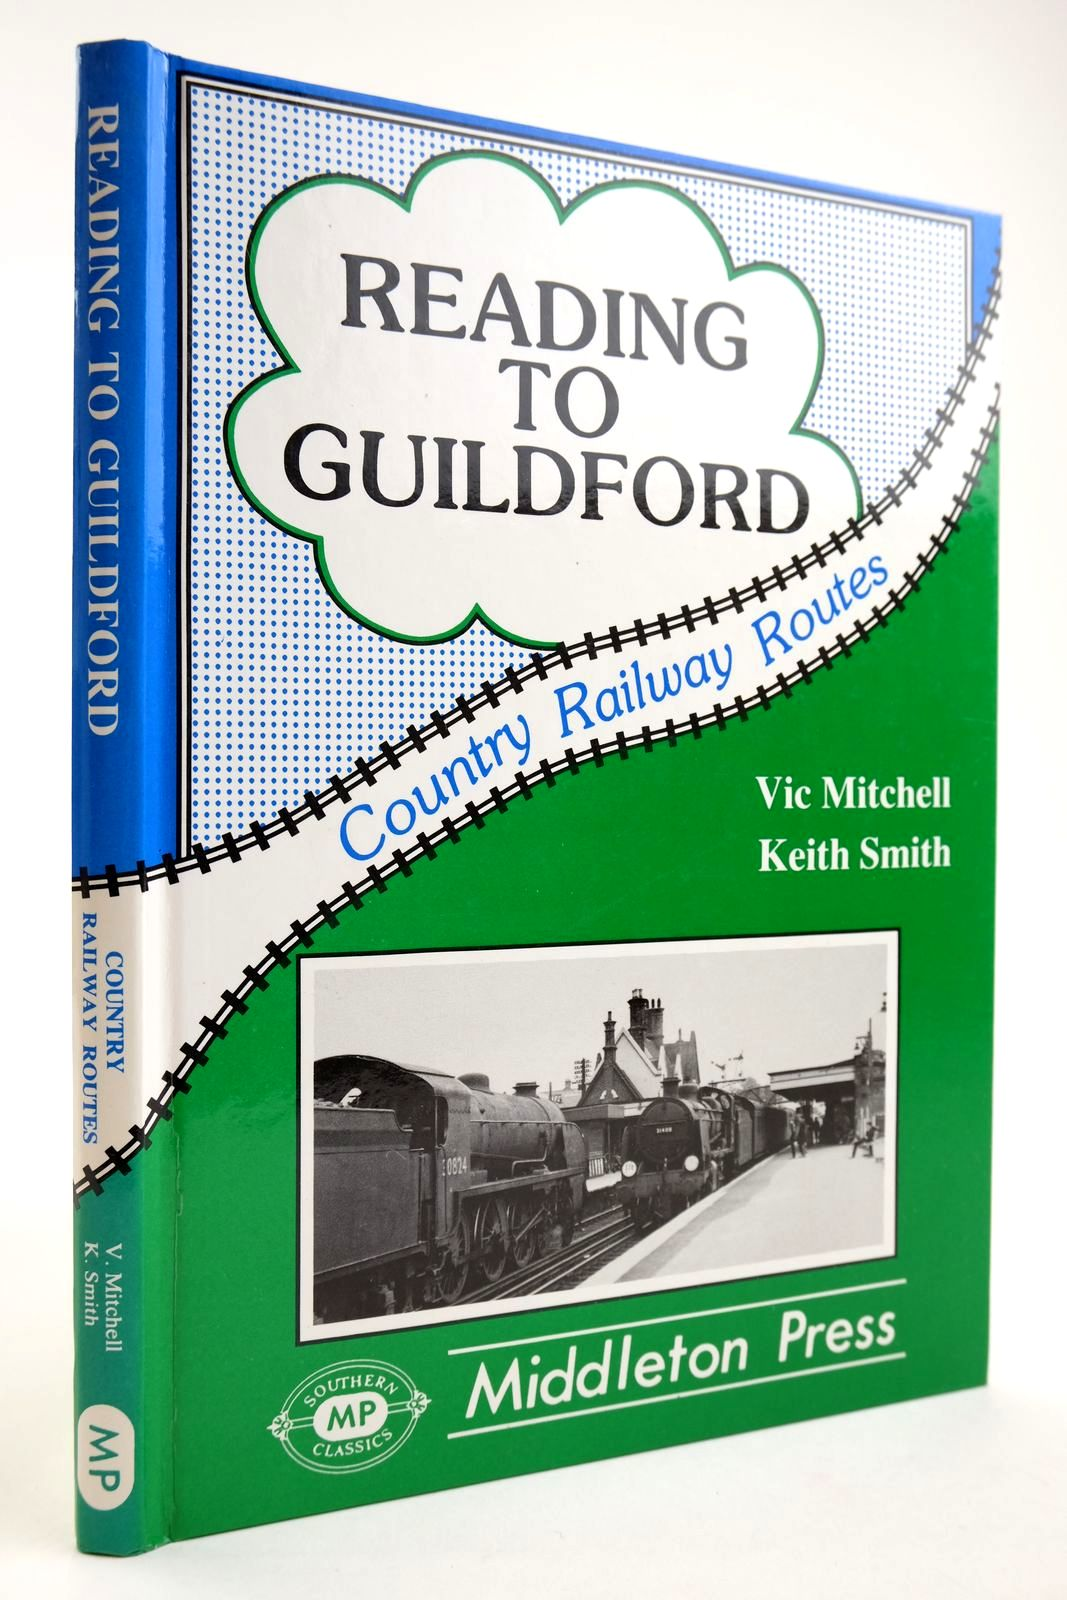 Photo of READING TO GUILDFORD written by Mitchell, Vic Smith, Keith published by Middleton Press (STOCK CODE: 2133805)  for sale by Stella & Rose's Books